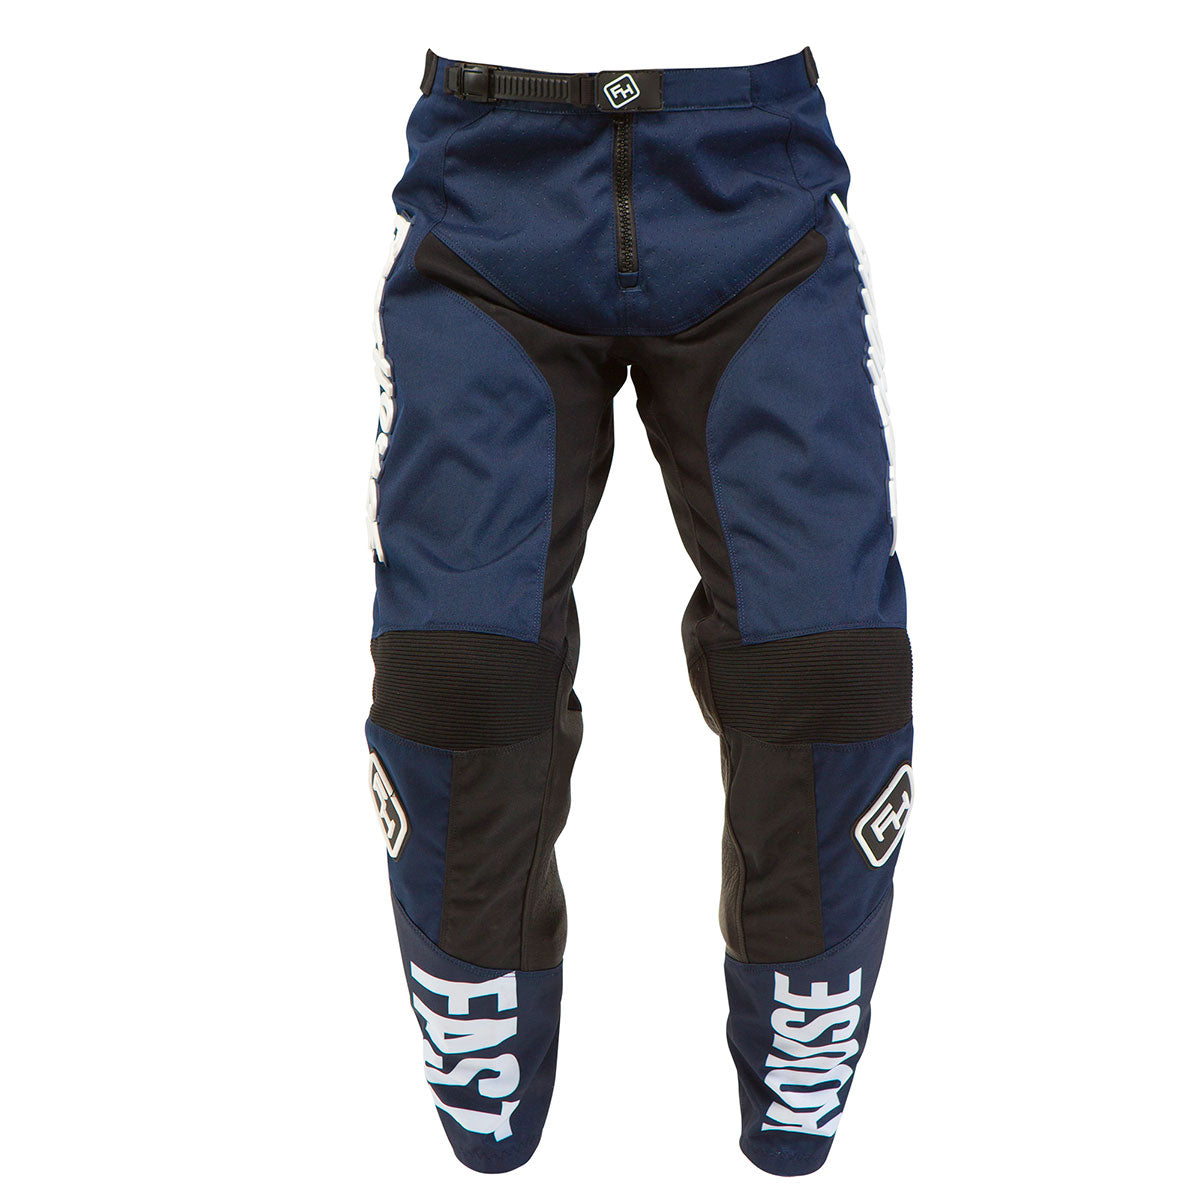 Fasthouse Grindhouse Mens Dirt Bike Motorcycle Pants Navy Blue Size 32